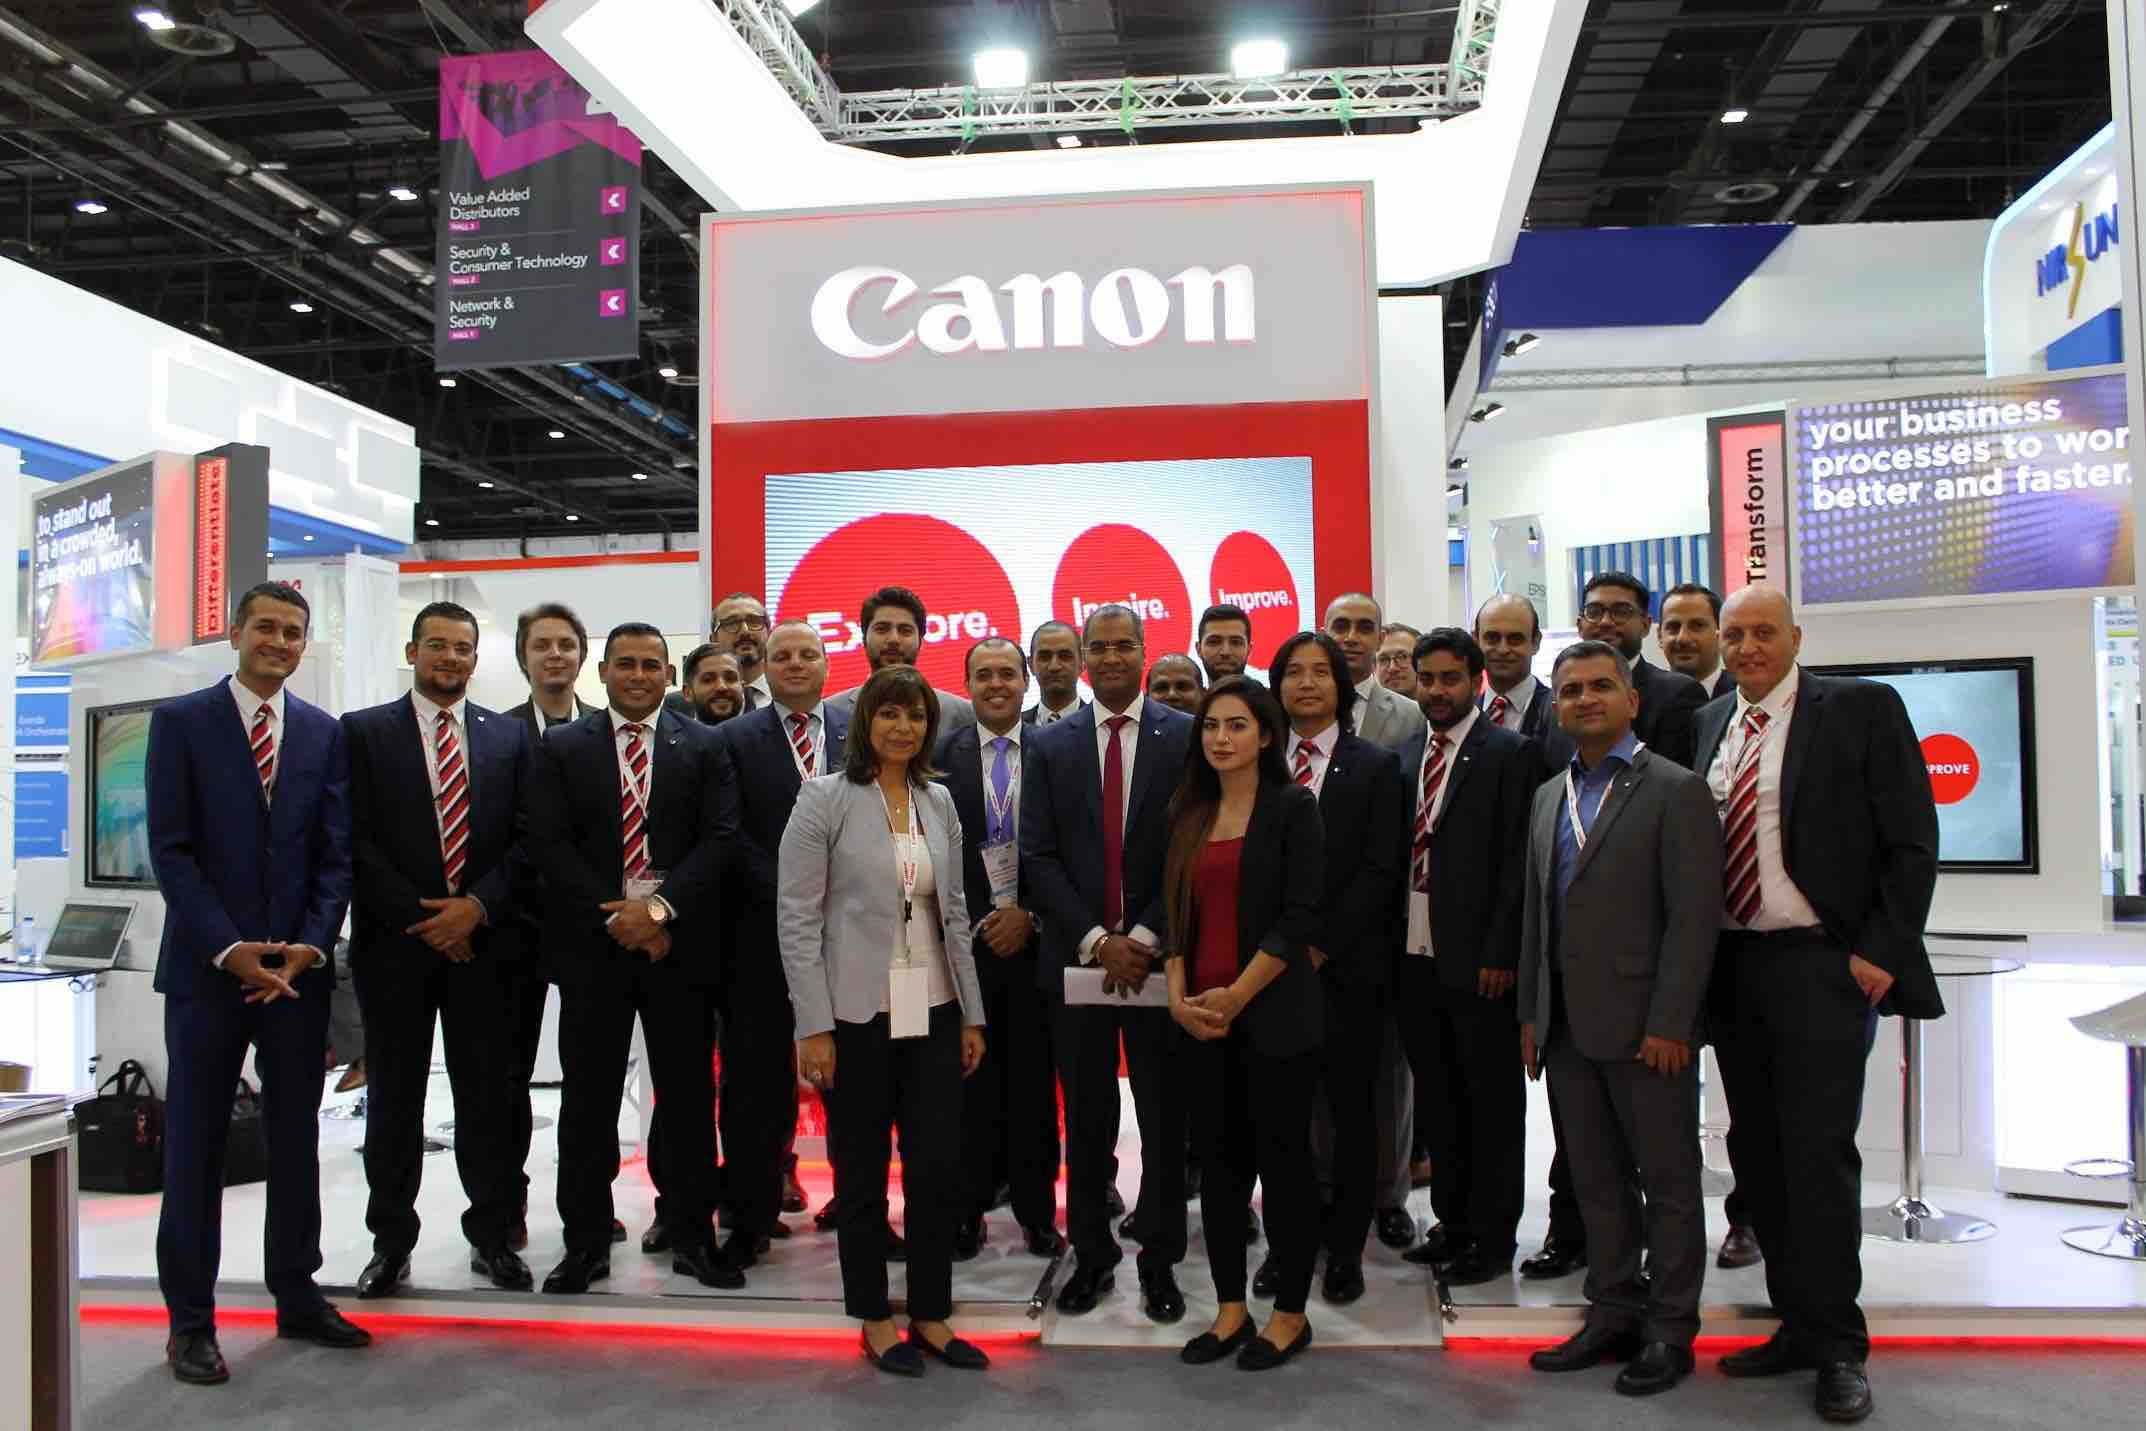 Canon-participates-at-37th-GITEX-Technology-Week-with-future-technologies-and-smart-cities-solutions-copy